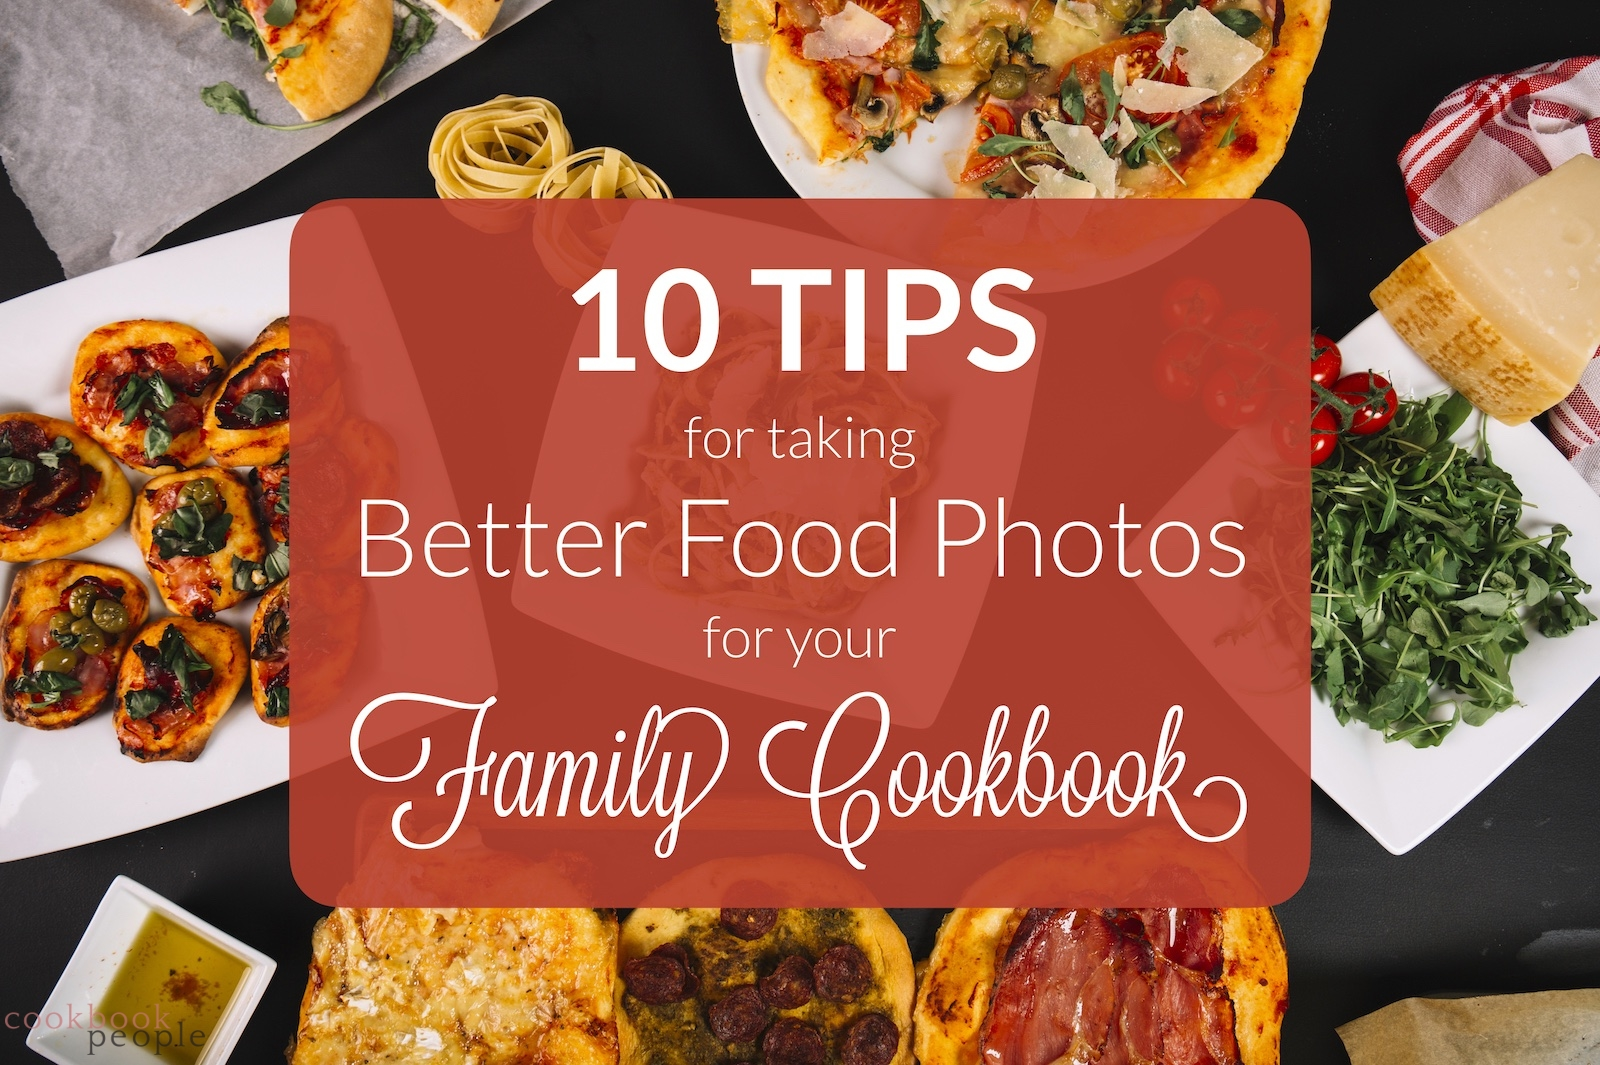 Dishes on table overlaid with text: 10 Tips for Taking Better Food Photos for Your Family Cookbook